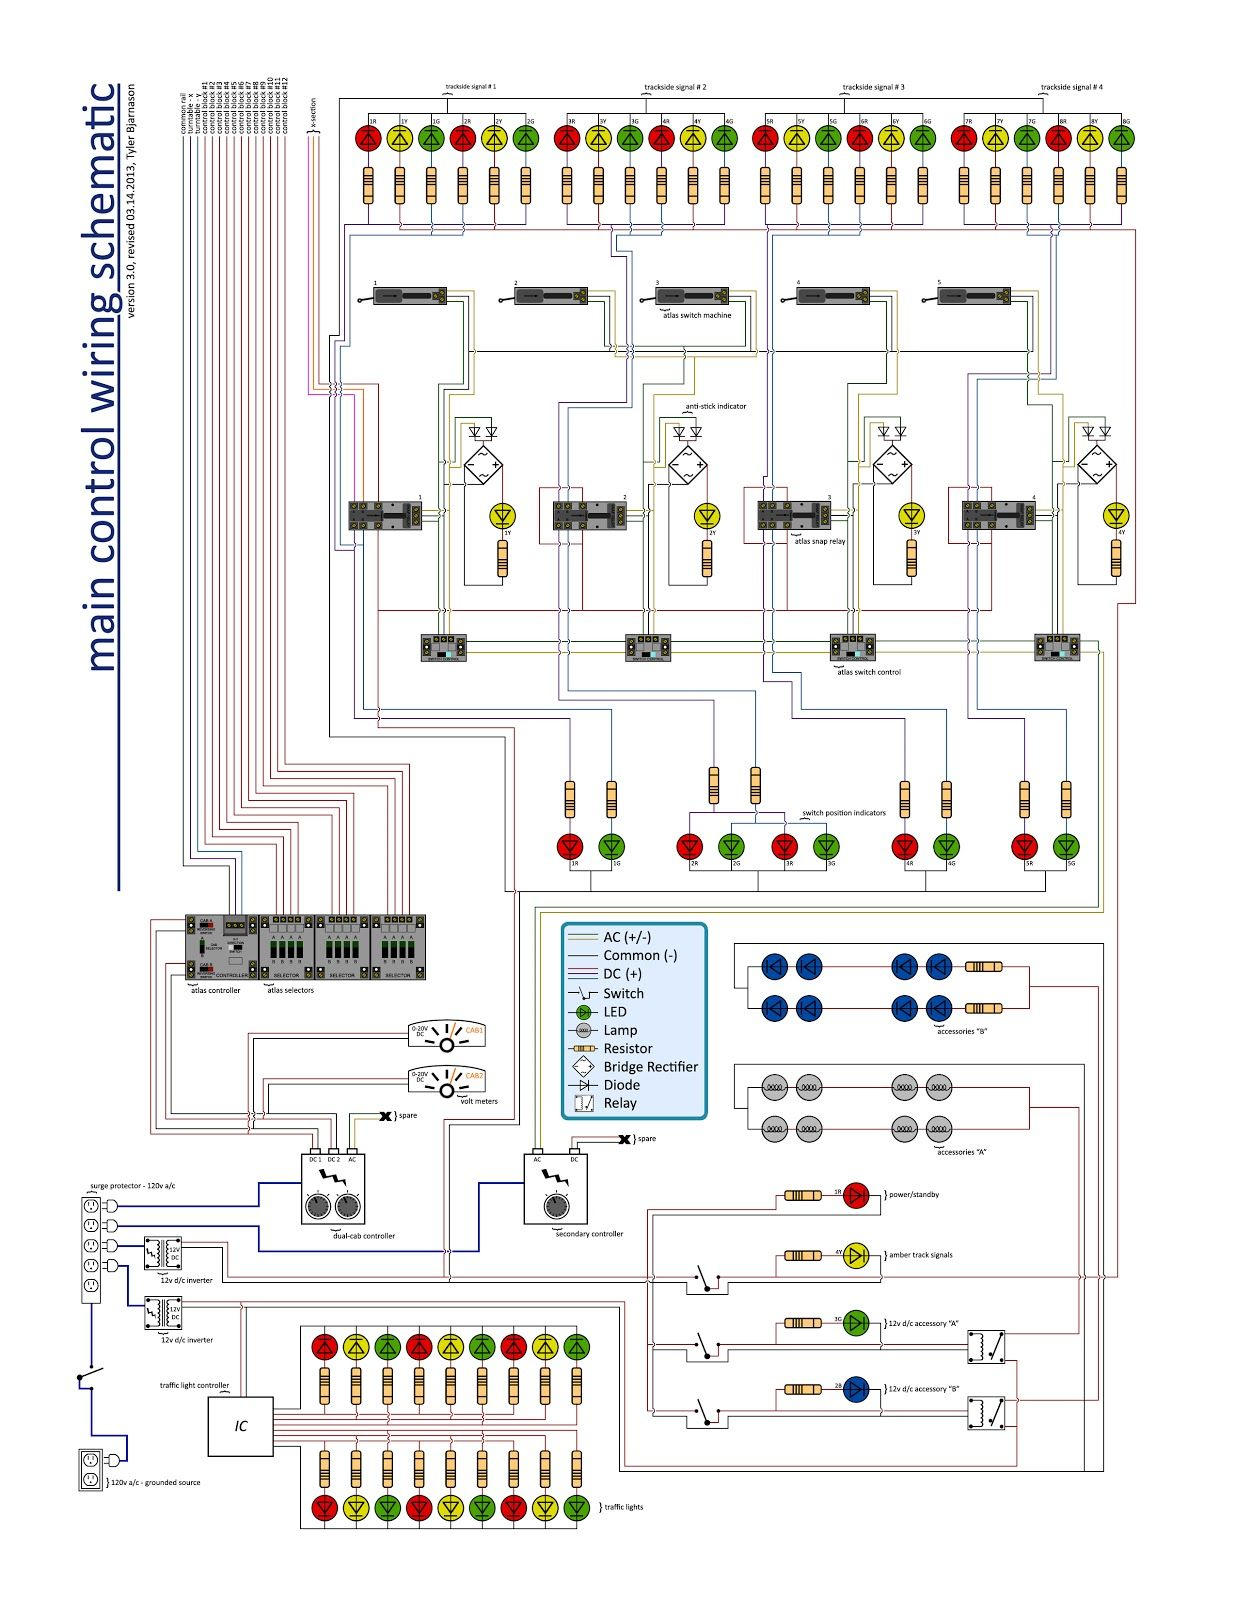 4x8 Module Wiring Diagram - Wiring Diagram •